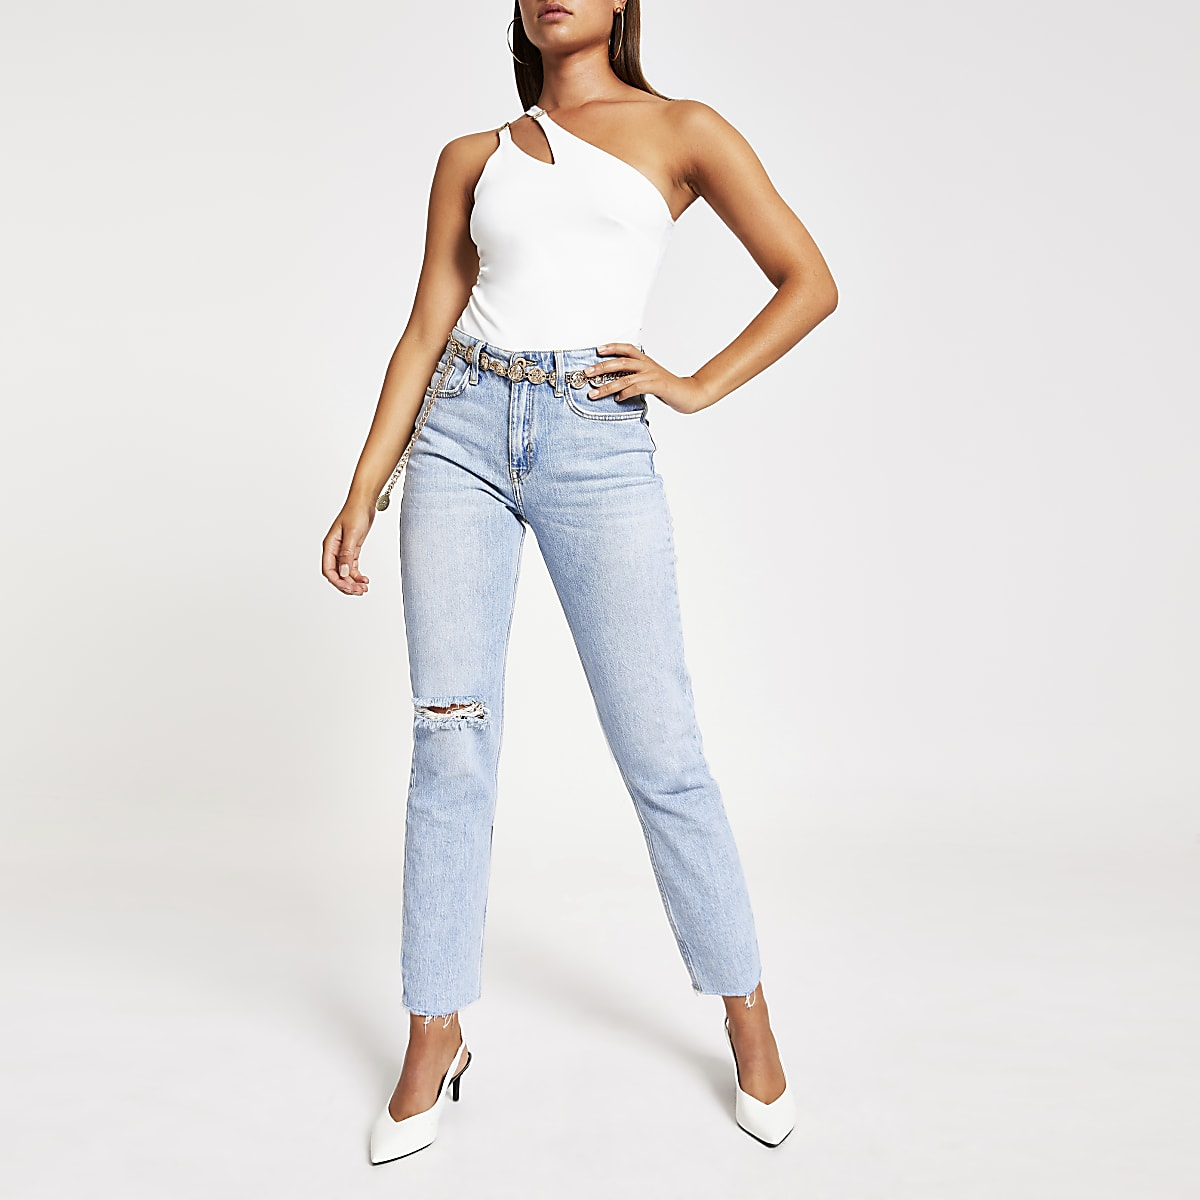 White one sleeve asymmetric split bodysuit